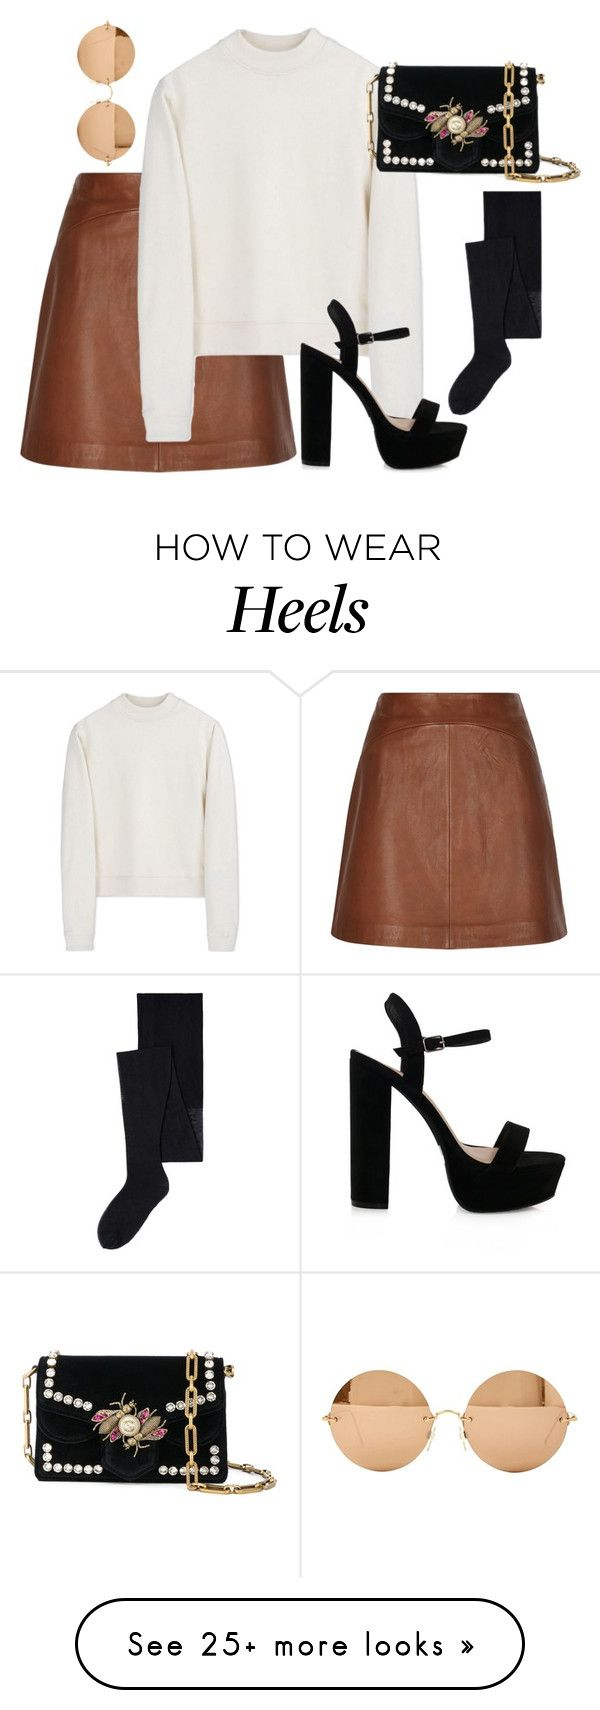 """Untitled #4485"" by magsmccray on Polyvore featuring Reiss, Acne Studios, MANGO, Proenza Schouler and Victoria Beckham"